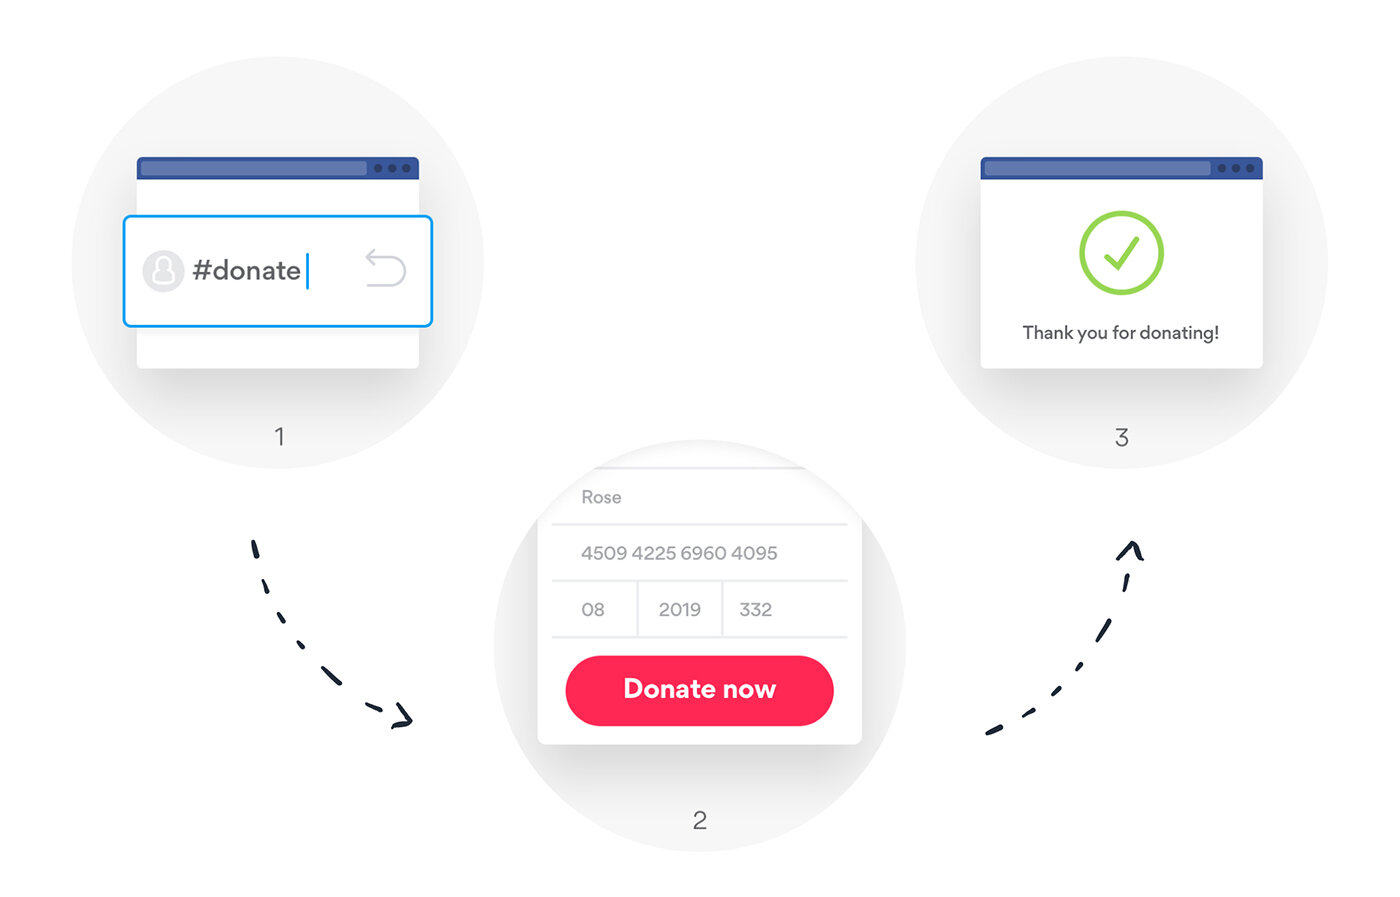 3 simple steps - Forget long donation forms and complicated processes — #donating is easy:1. Supporters comment or reply #donate2. Supporters click the link in the reply to sign up3. An instant reply is sent to confirm the donation